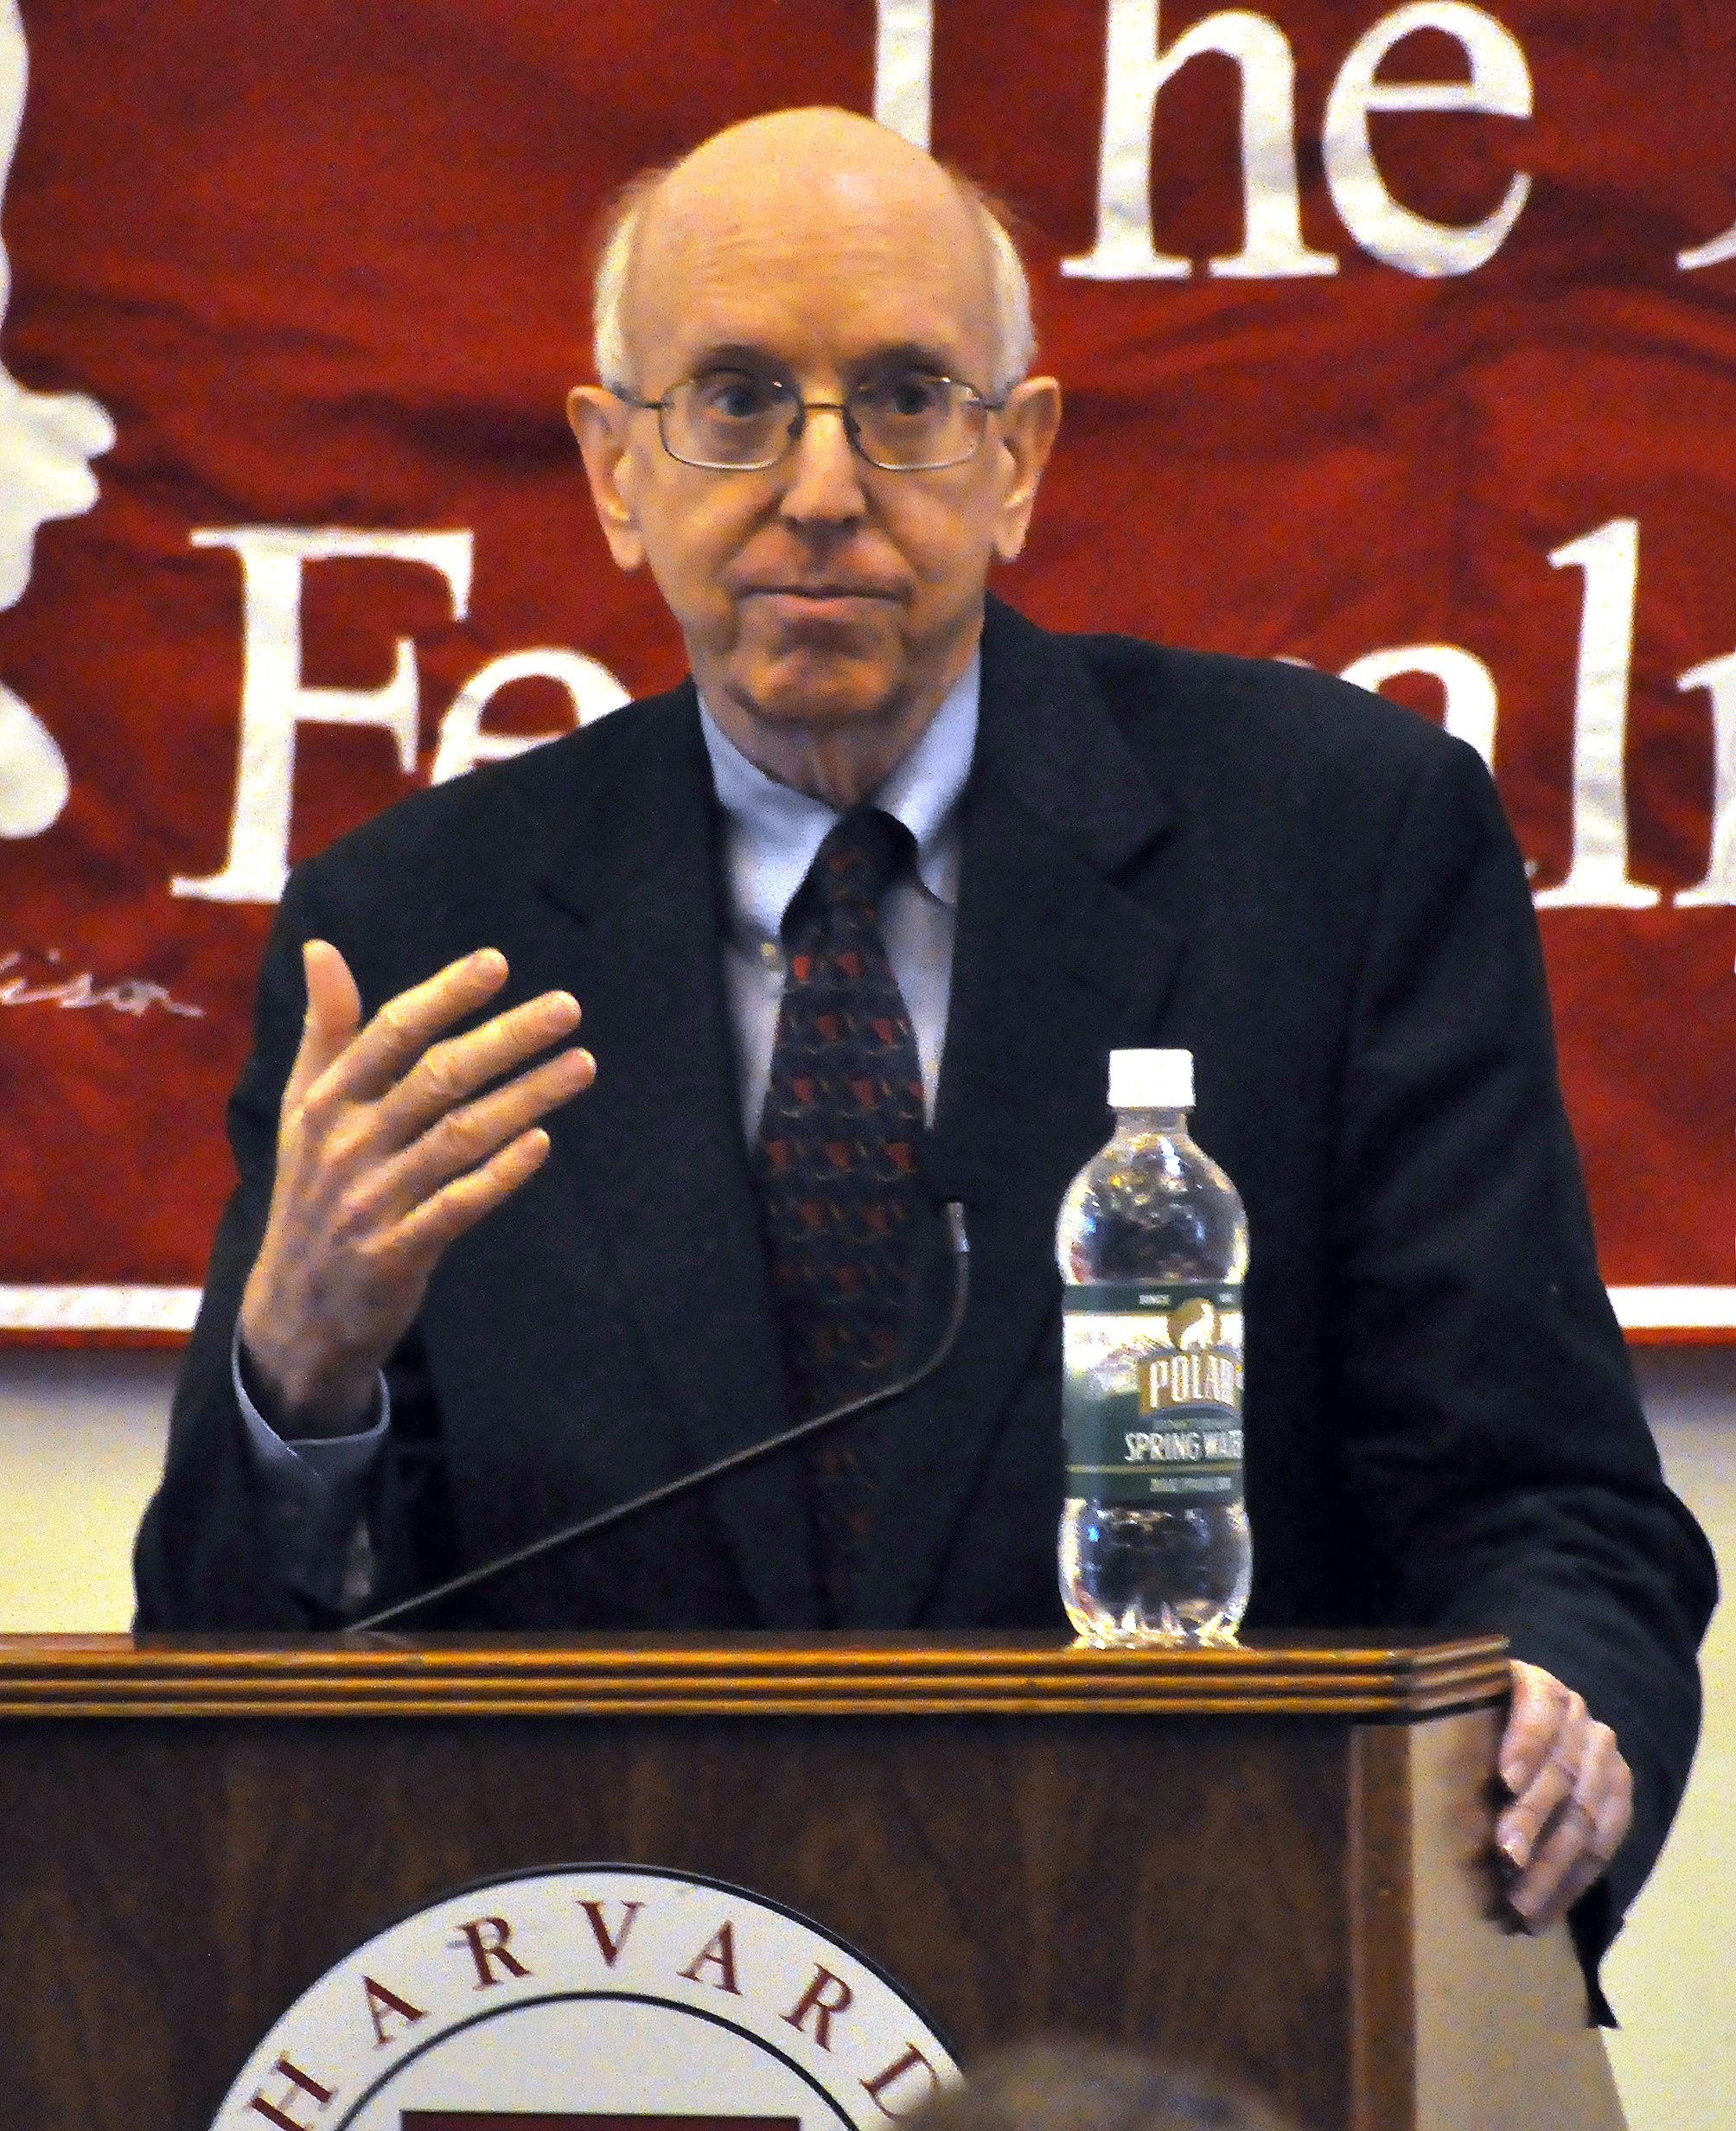 Judge Richard A. Posner